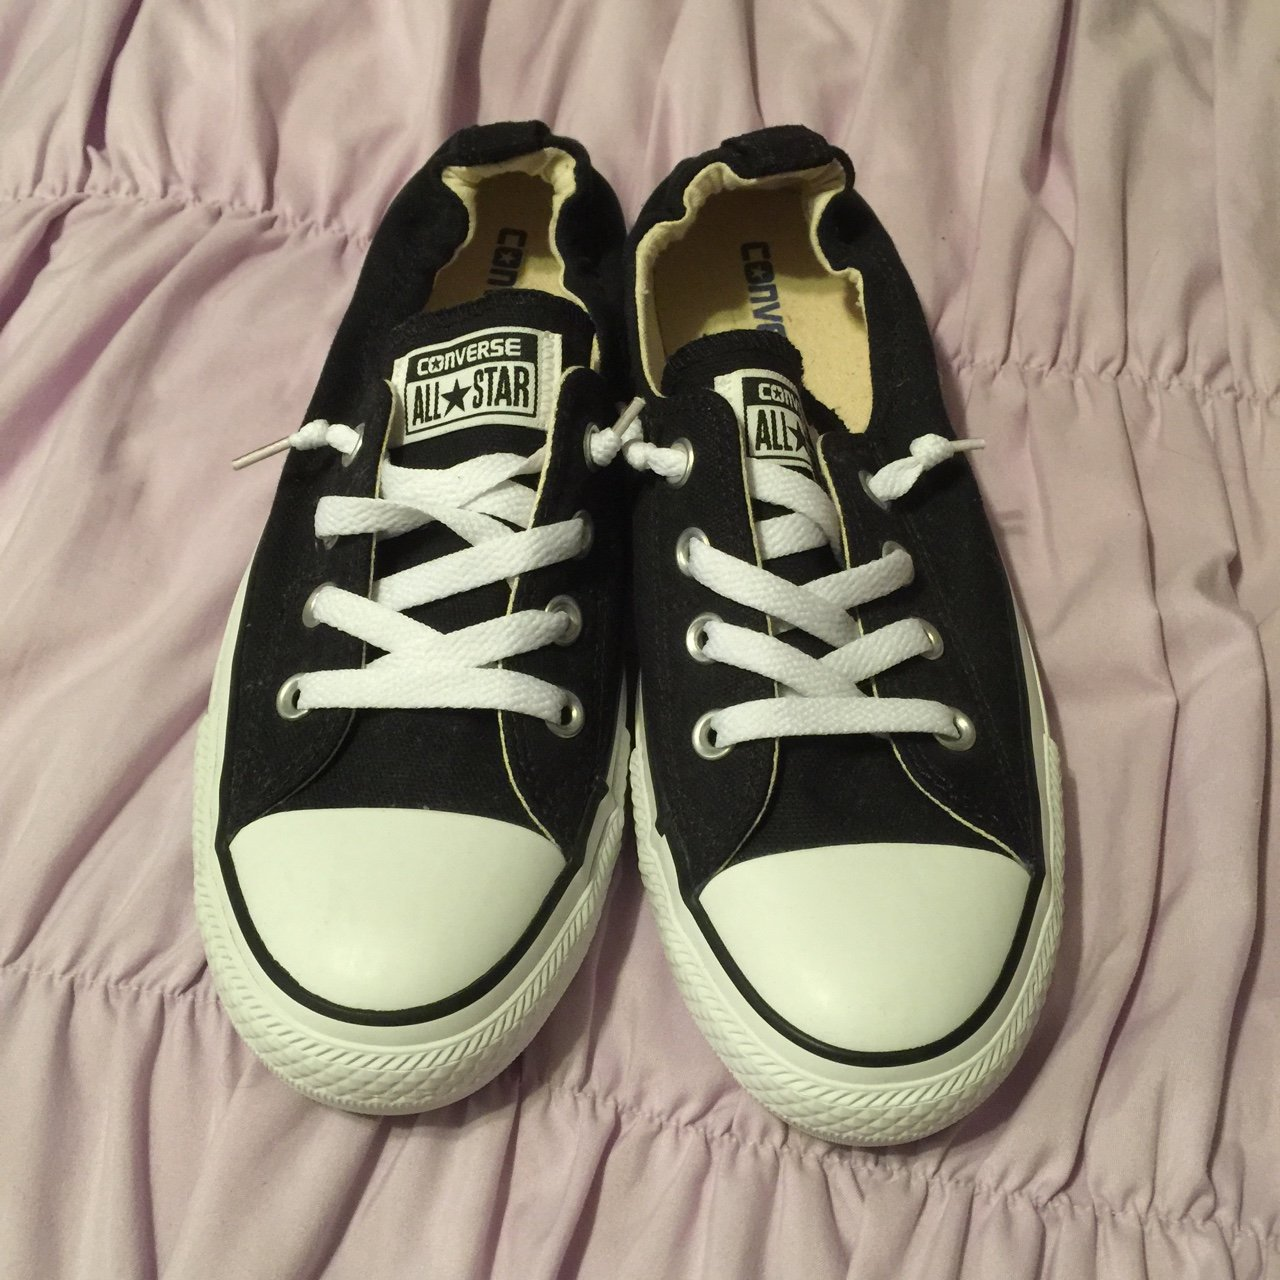 6396b58c42a Never worn used elastic  Converse. I got these as a gift but - Depop